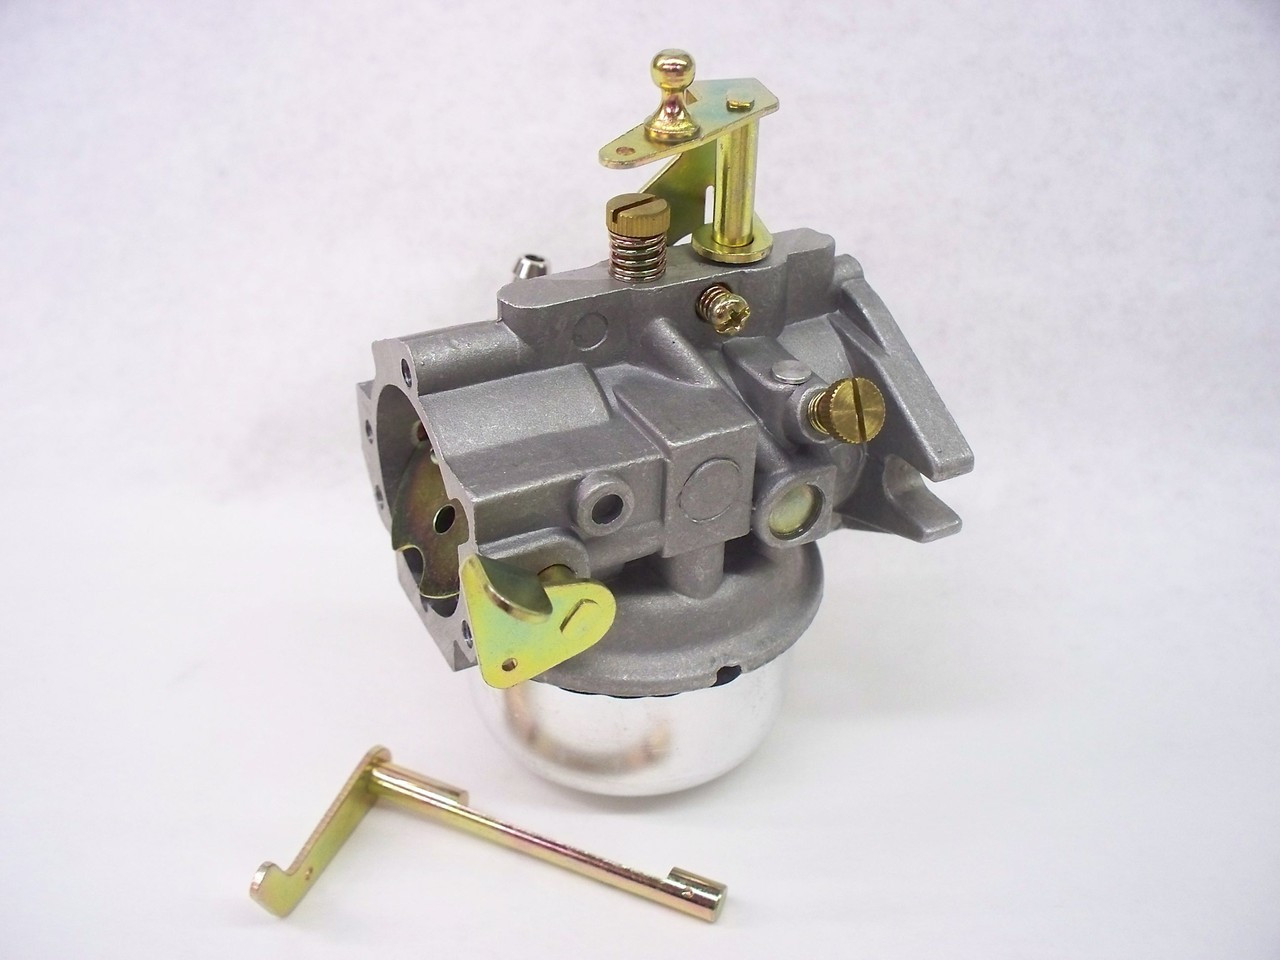 New Replacment 26 Carburetor Kohler 10 12 hp 108 128 129 1200 1250 107 127  104 124